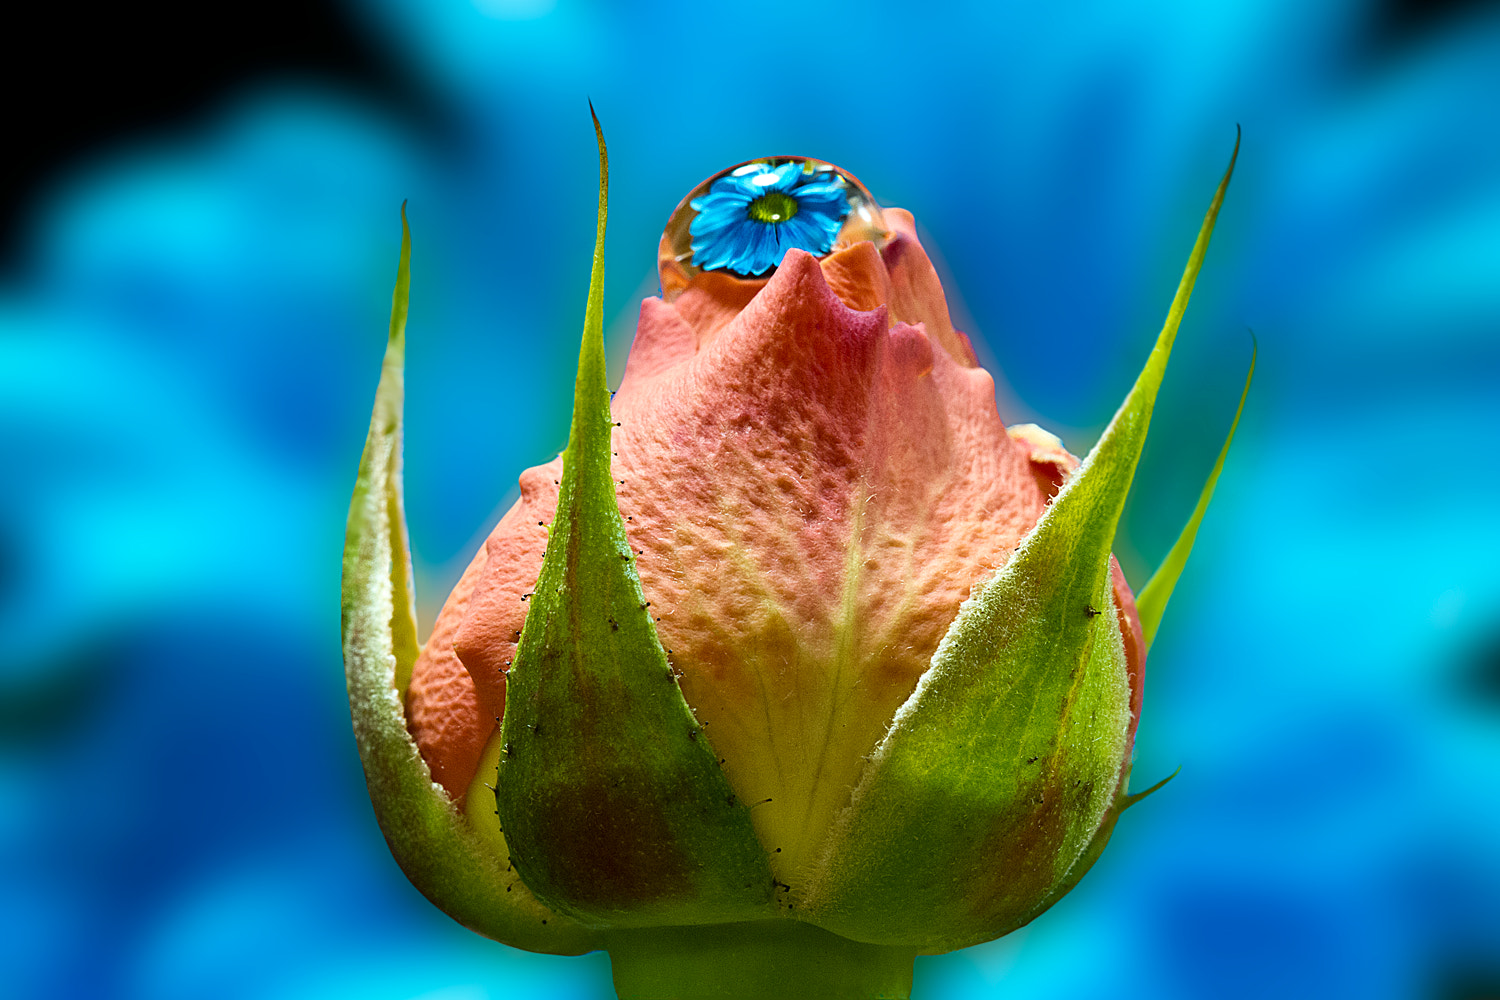 Photograph Blue by Diana Dante on 500px